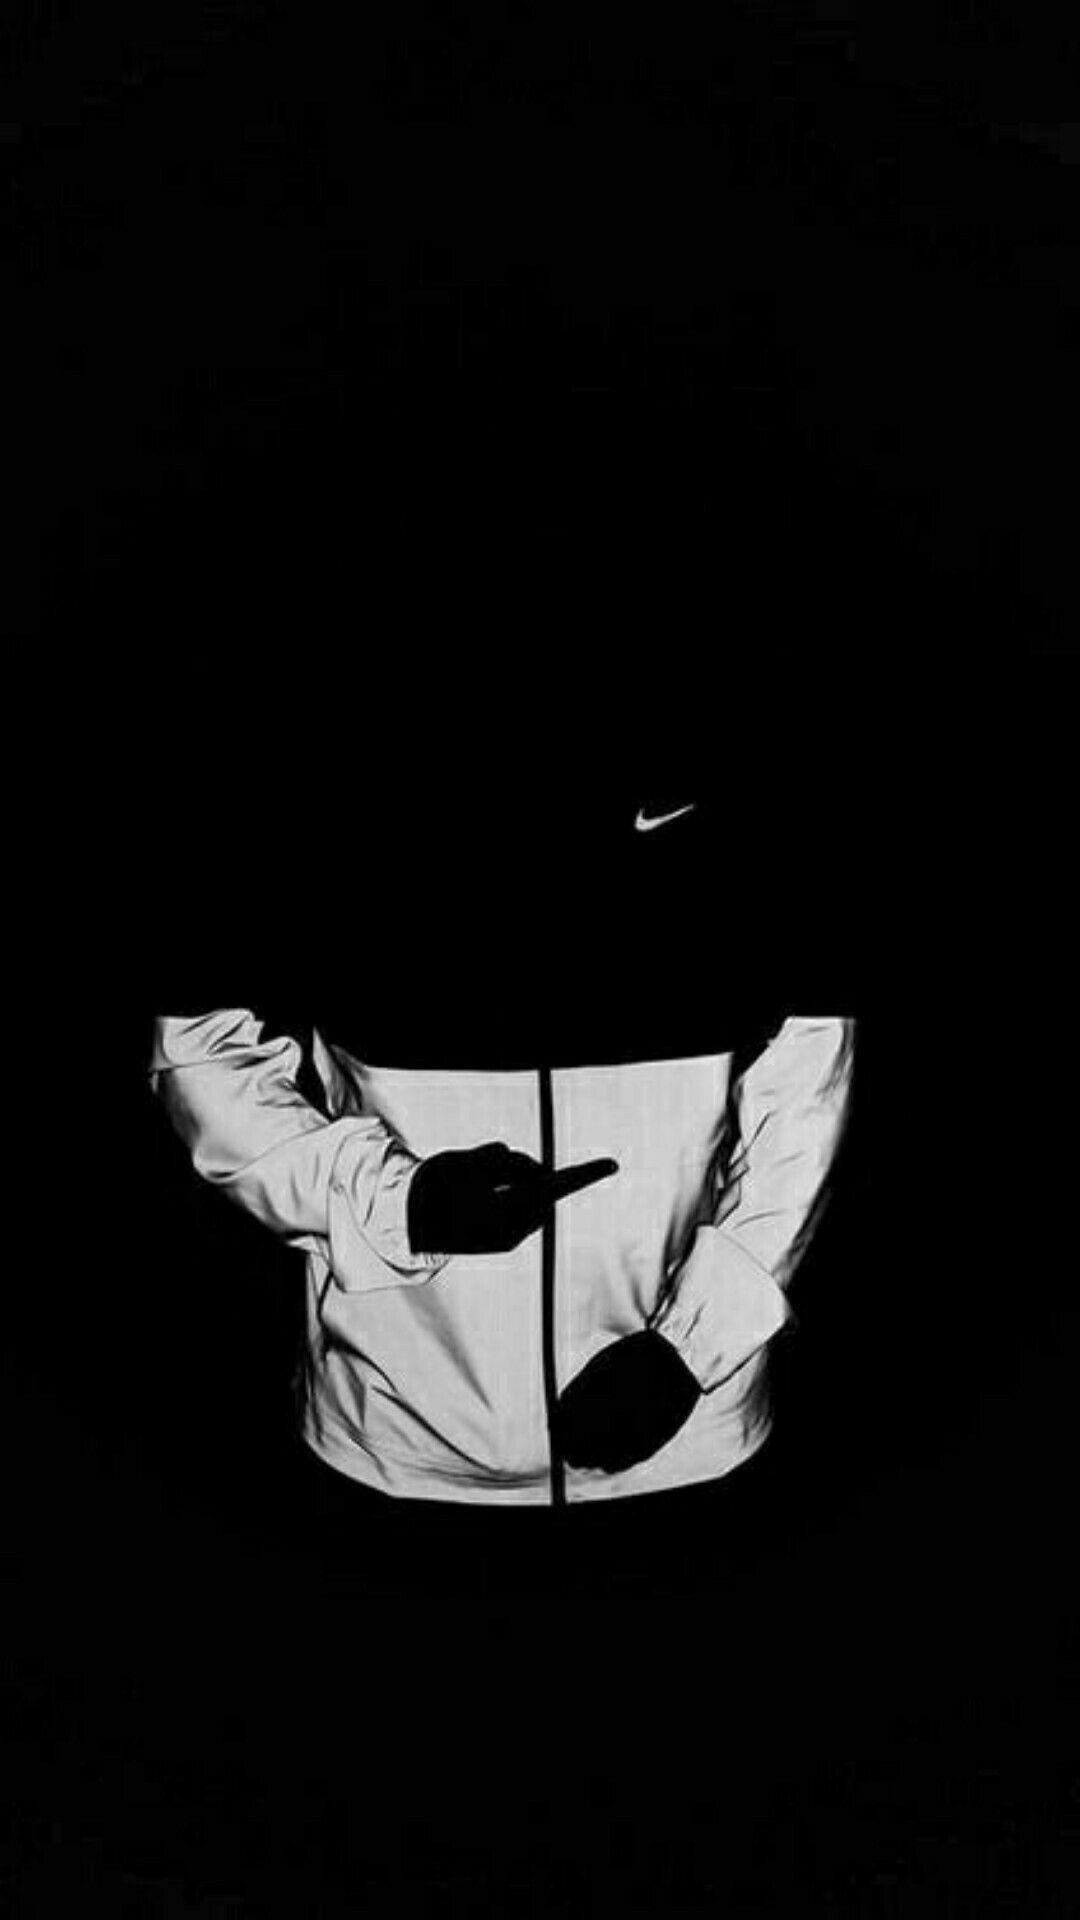 Nike Iphone Xr Wallpapers Wallpaper Cave